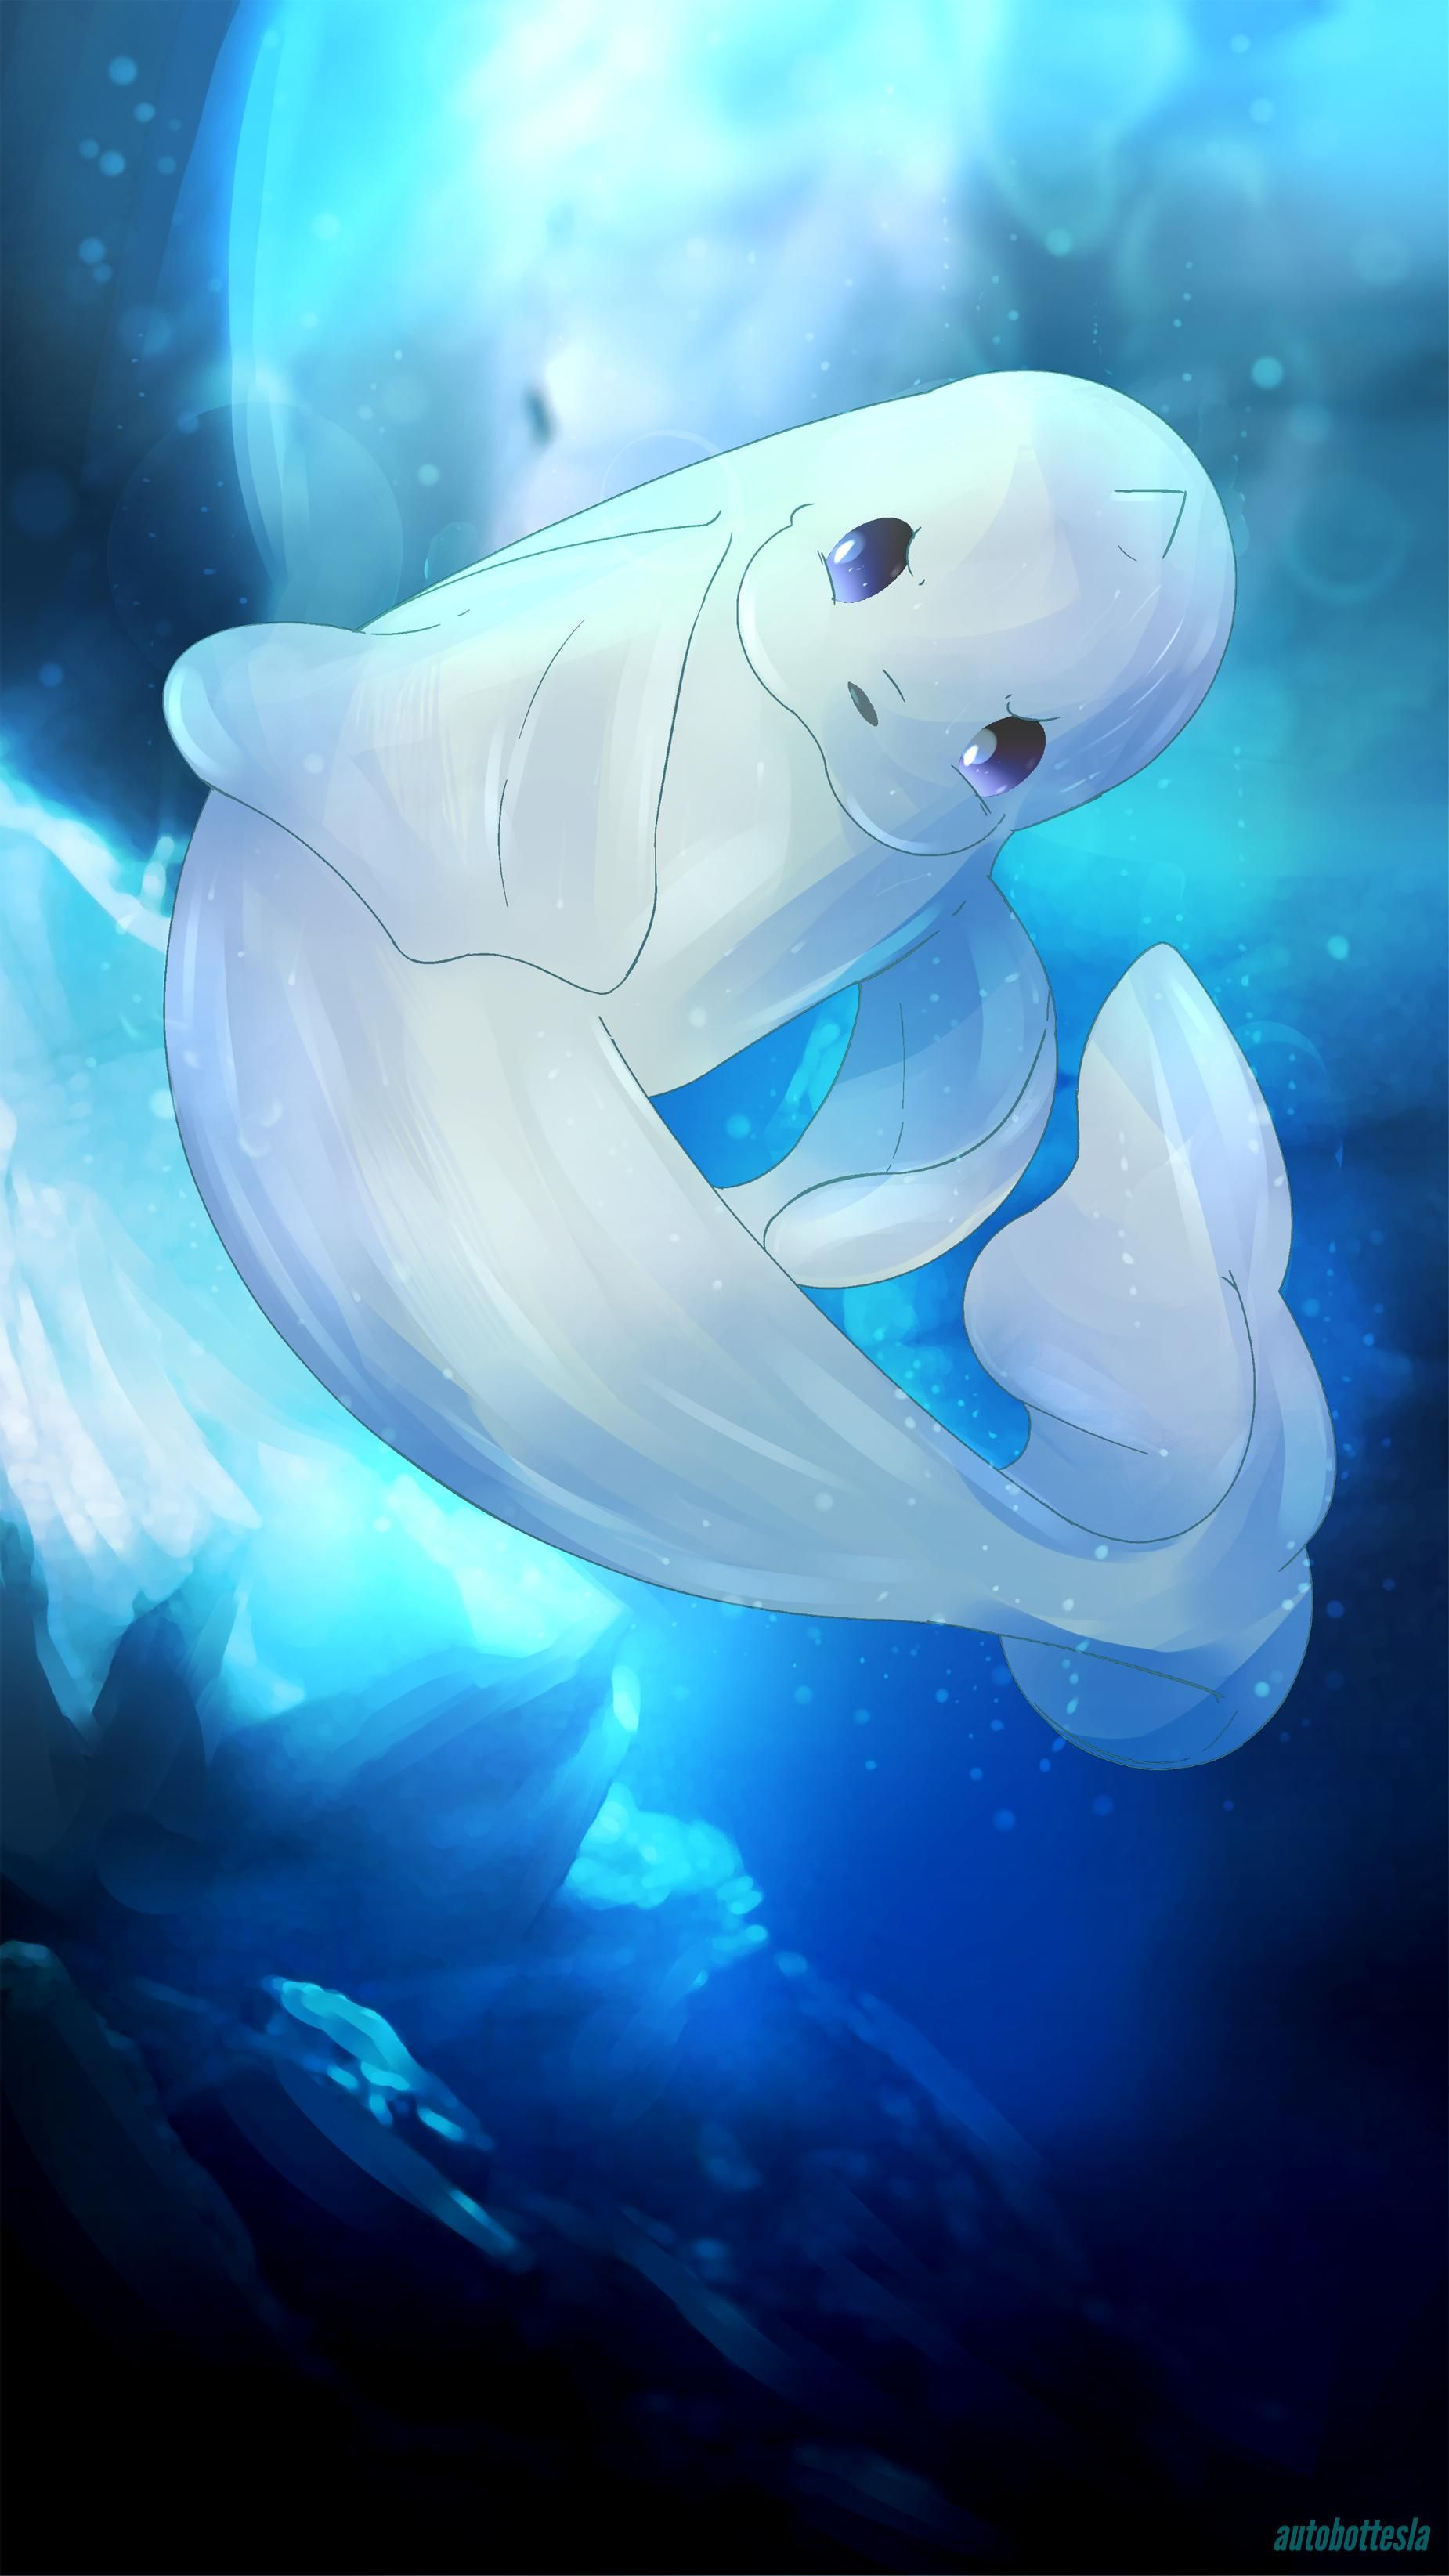 dewgong banner - Google Search